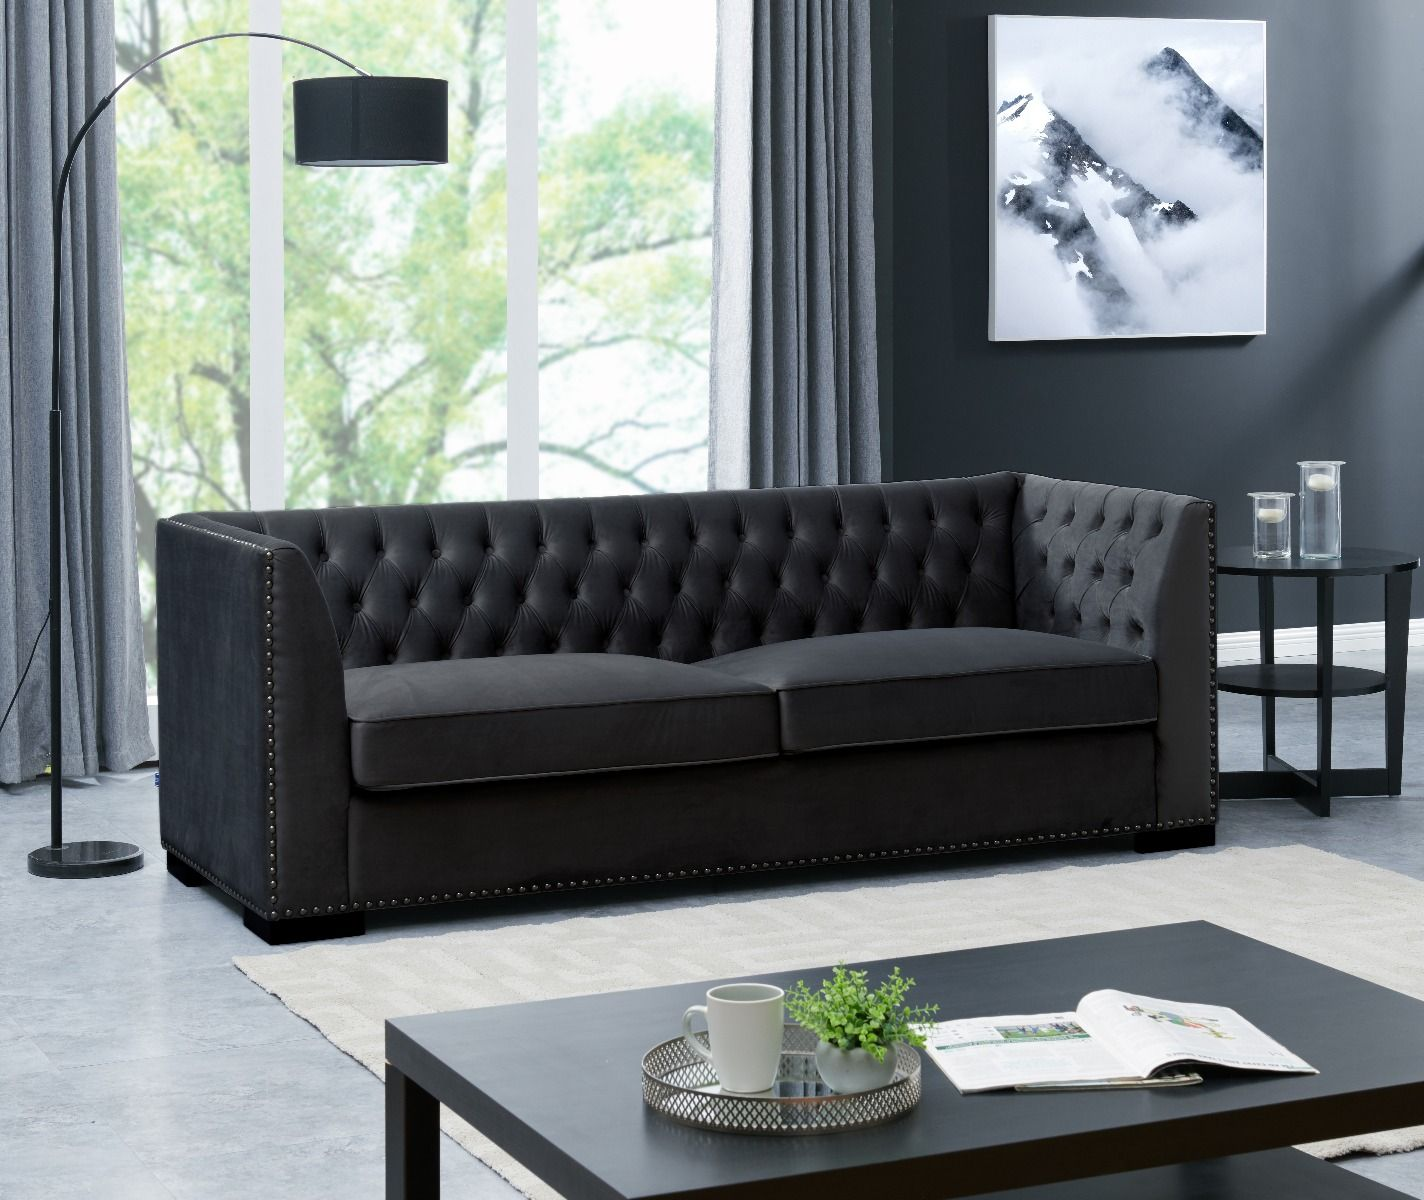 Chesterfield 3 Seater Sofa - Black